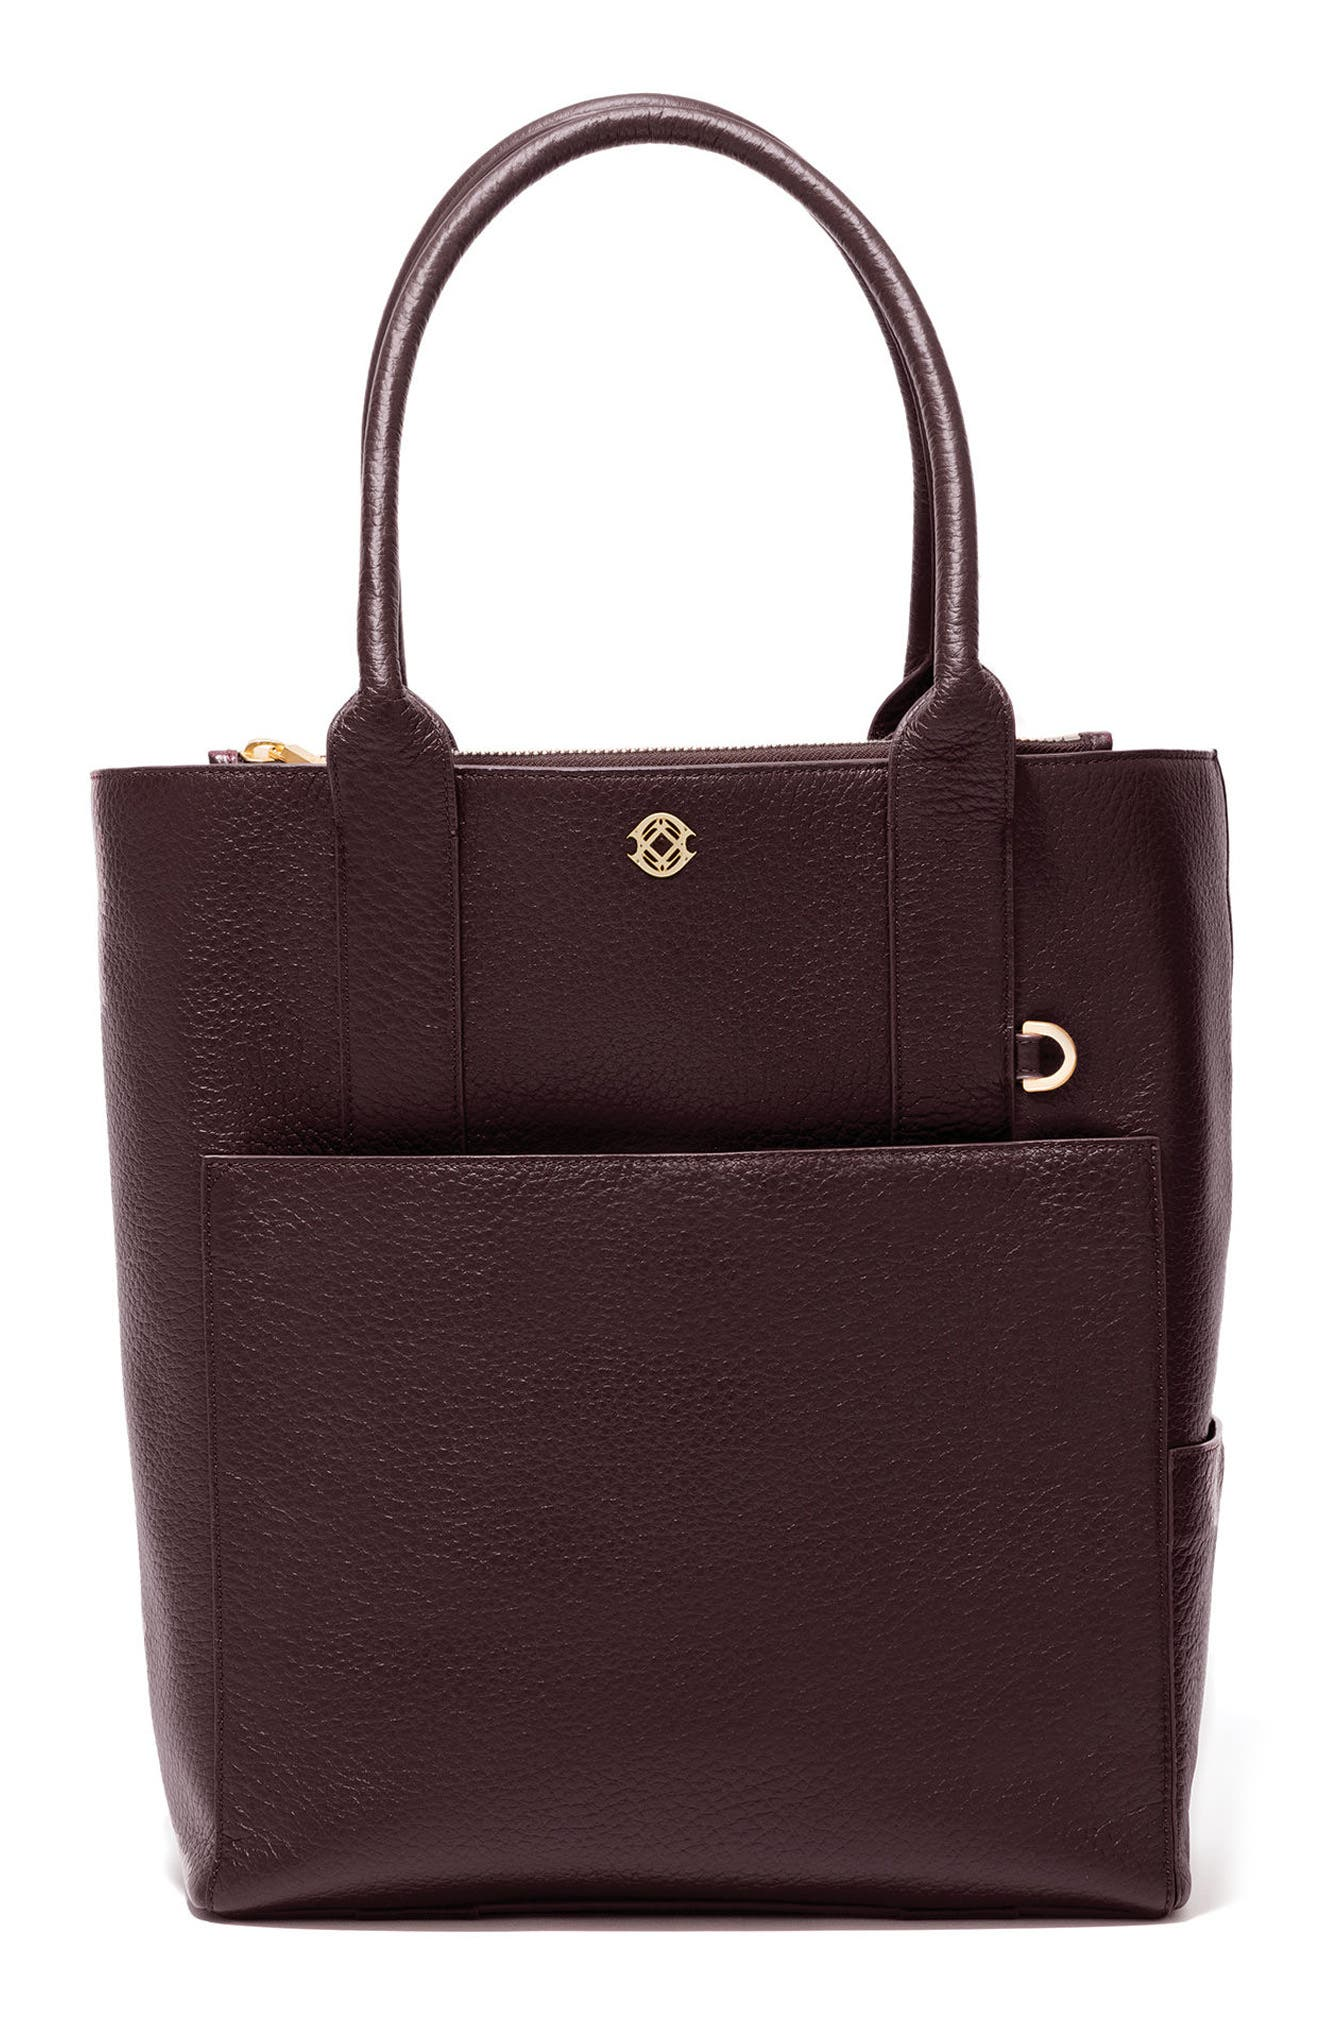 Charlie Leather Tote,                         Main,                         color, Oxblood